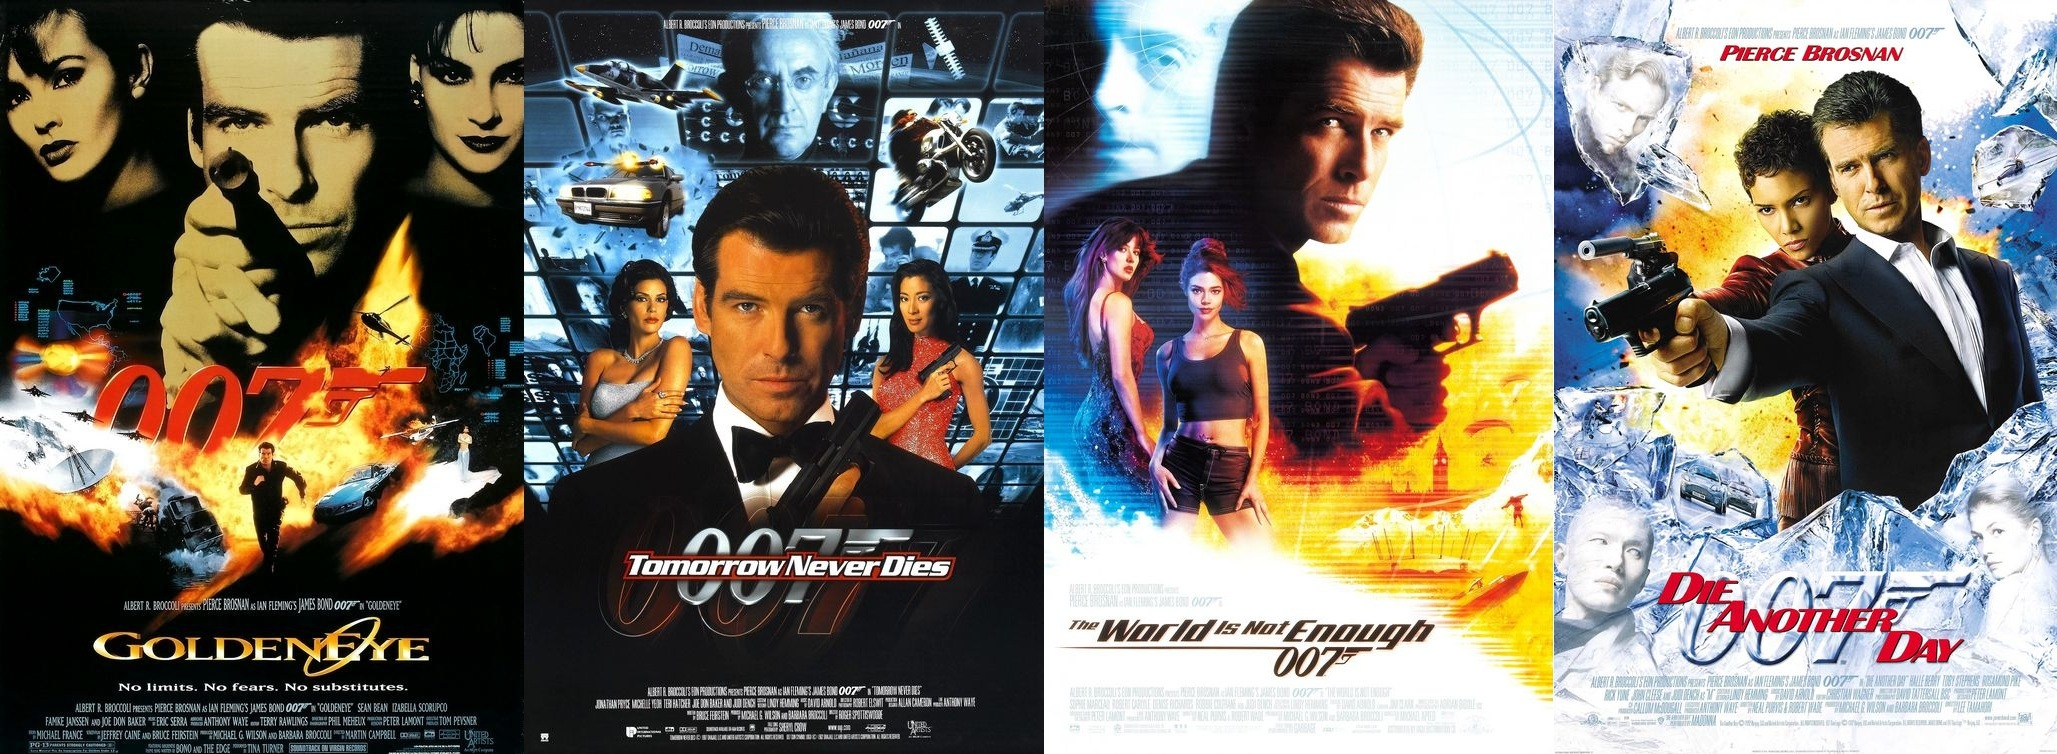 How Many James Bond Movies Did Pierce Brosnan Do